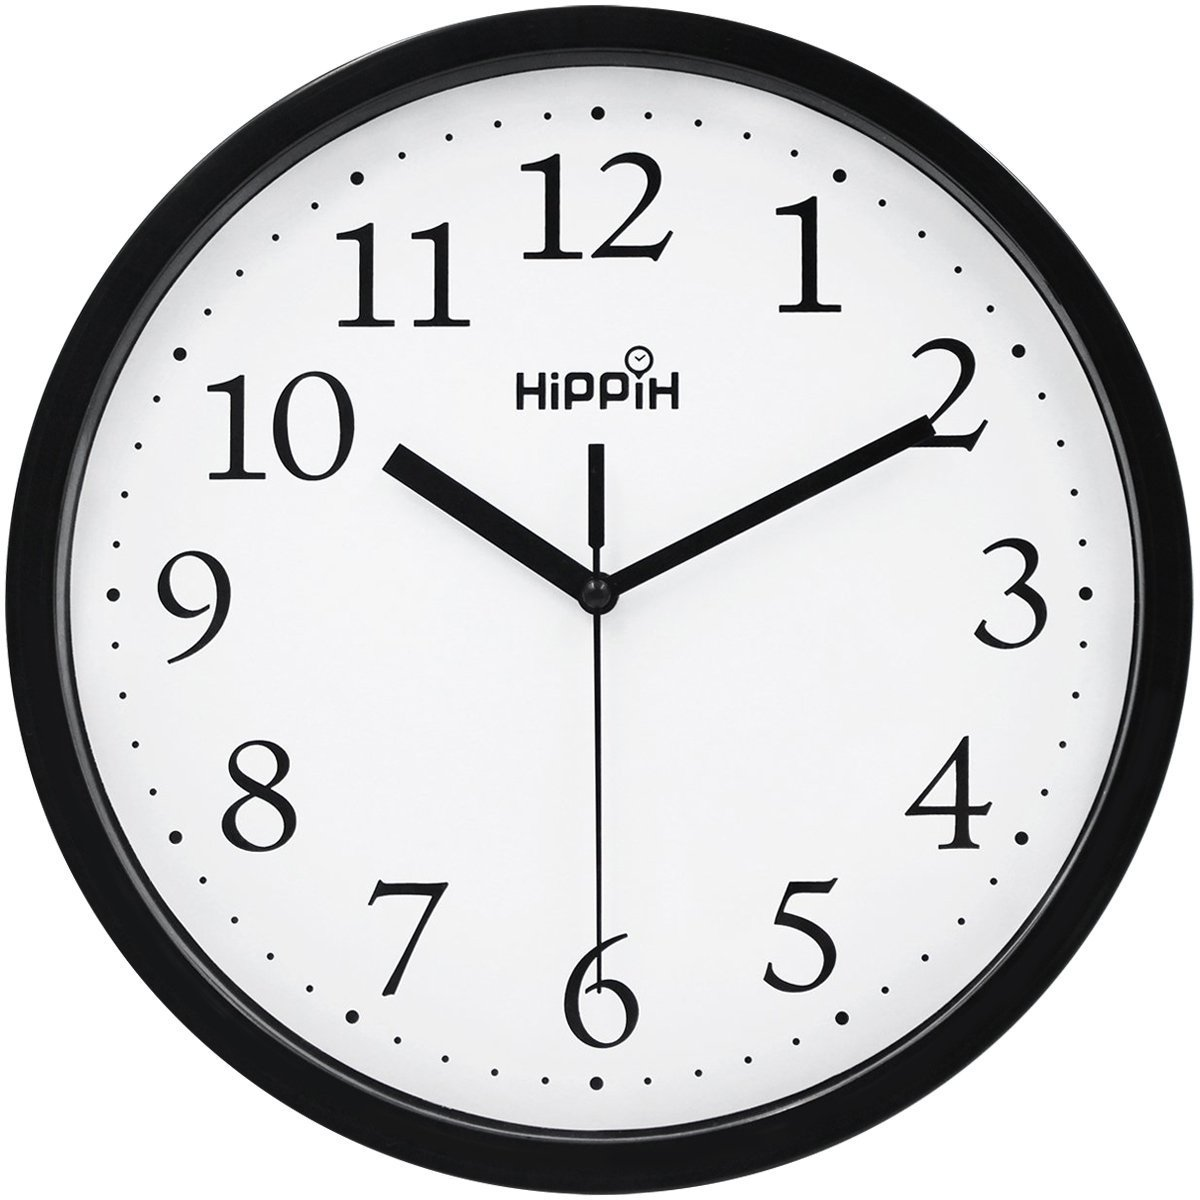 Amazon hippih black wall clock silent non ticking quality amazon hippih black wall clock silent non ticking quality quartz 10 inch round easy to read for home office school clock home kitchen amipublicfo Choice Image